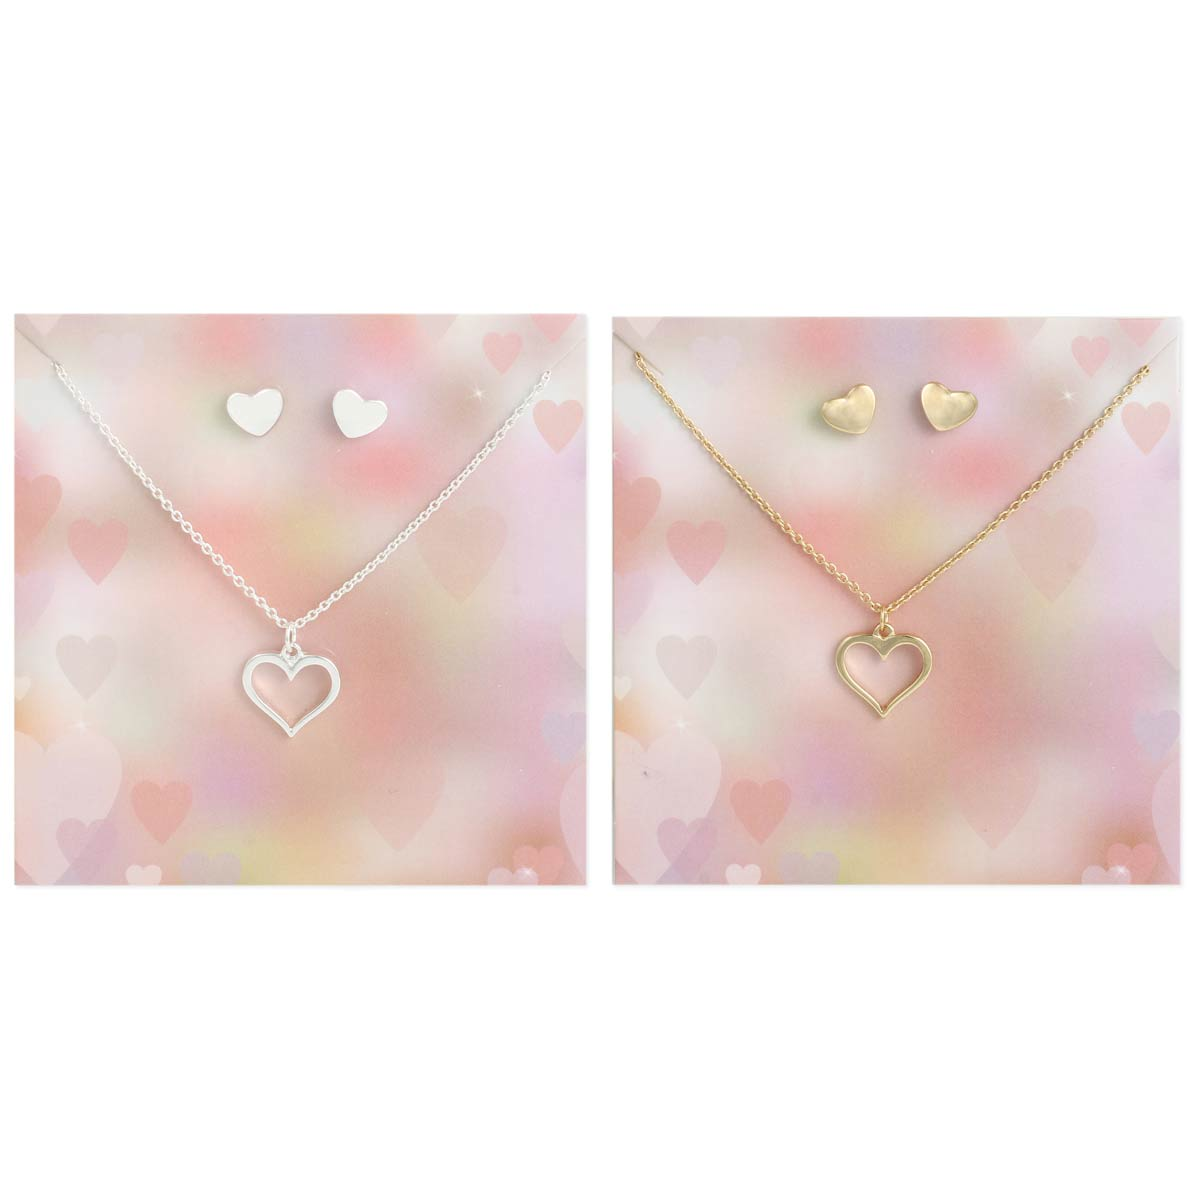 Carded Heart Necklace Earring Set